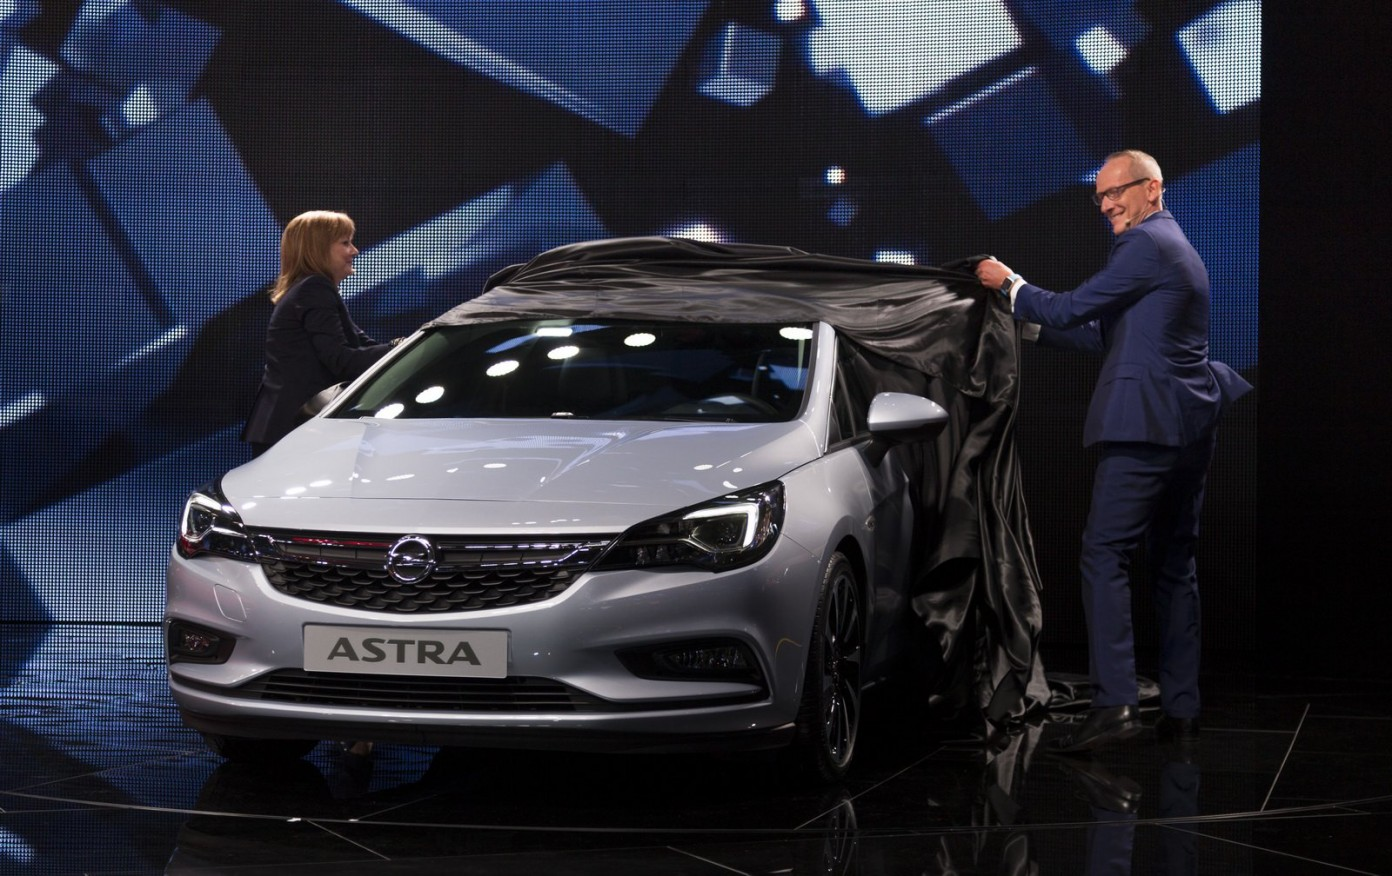 94 Best Review Nouvelle Opel Karl 2020 Model with Nouvelle Opel Karl 2020